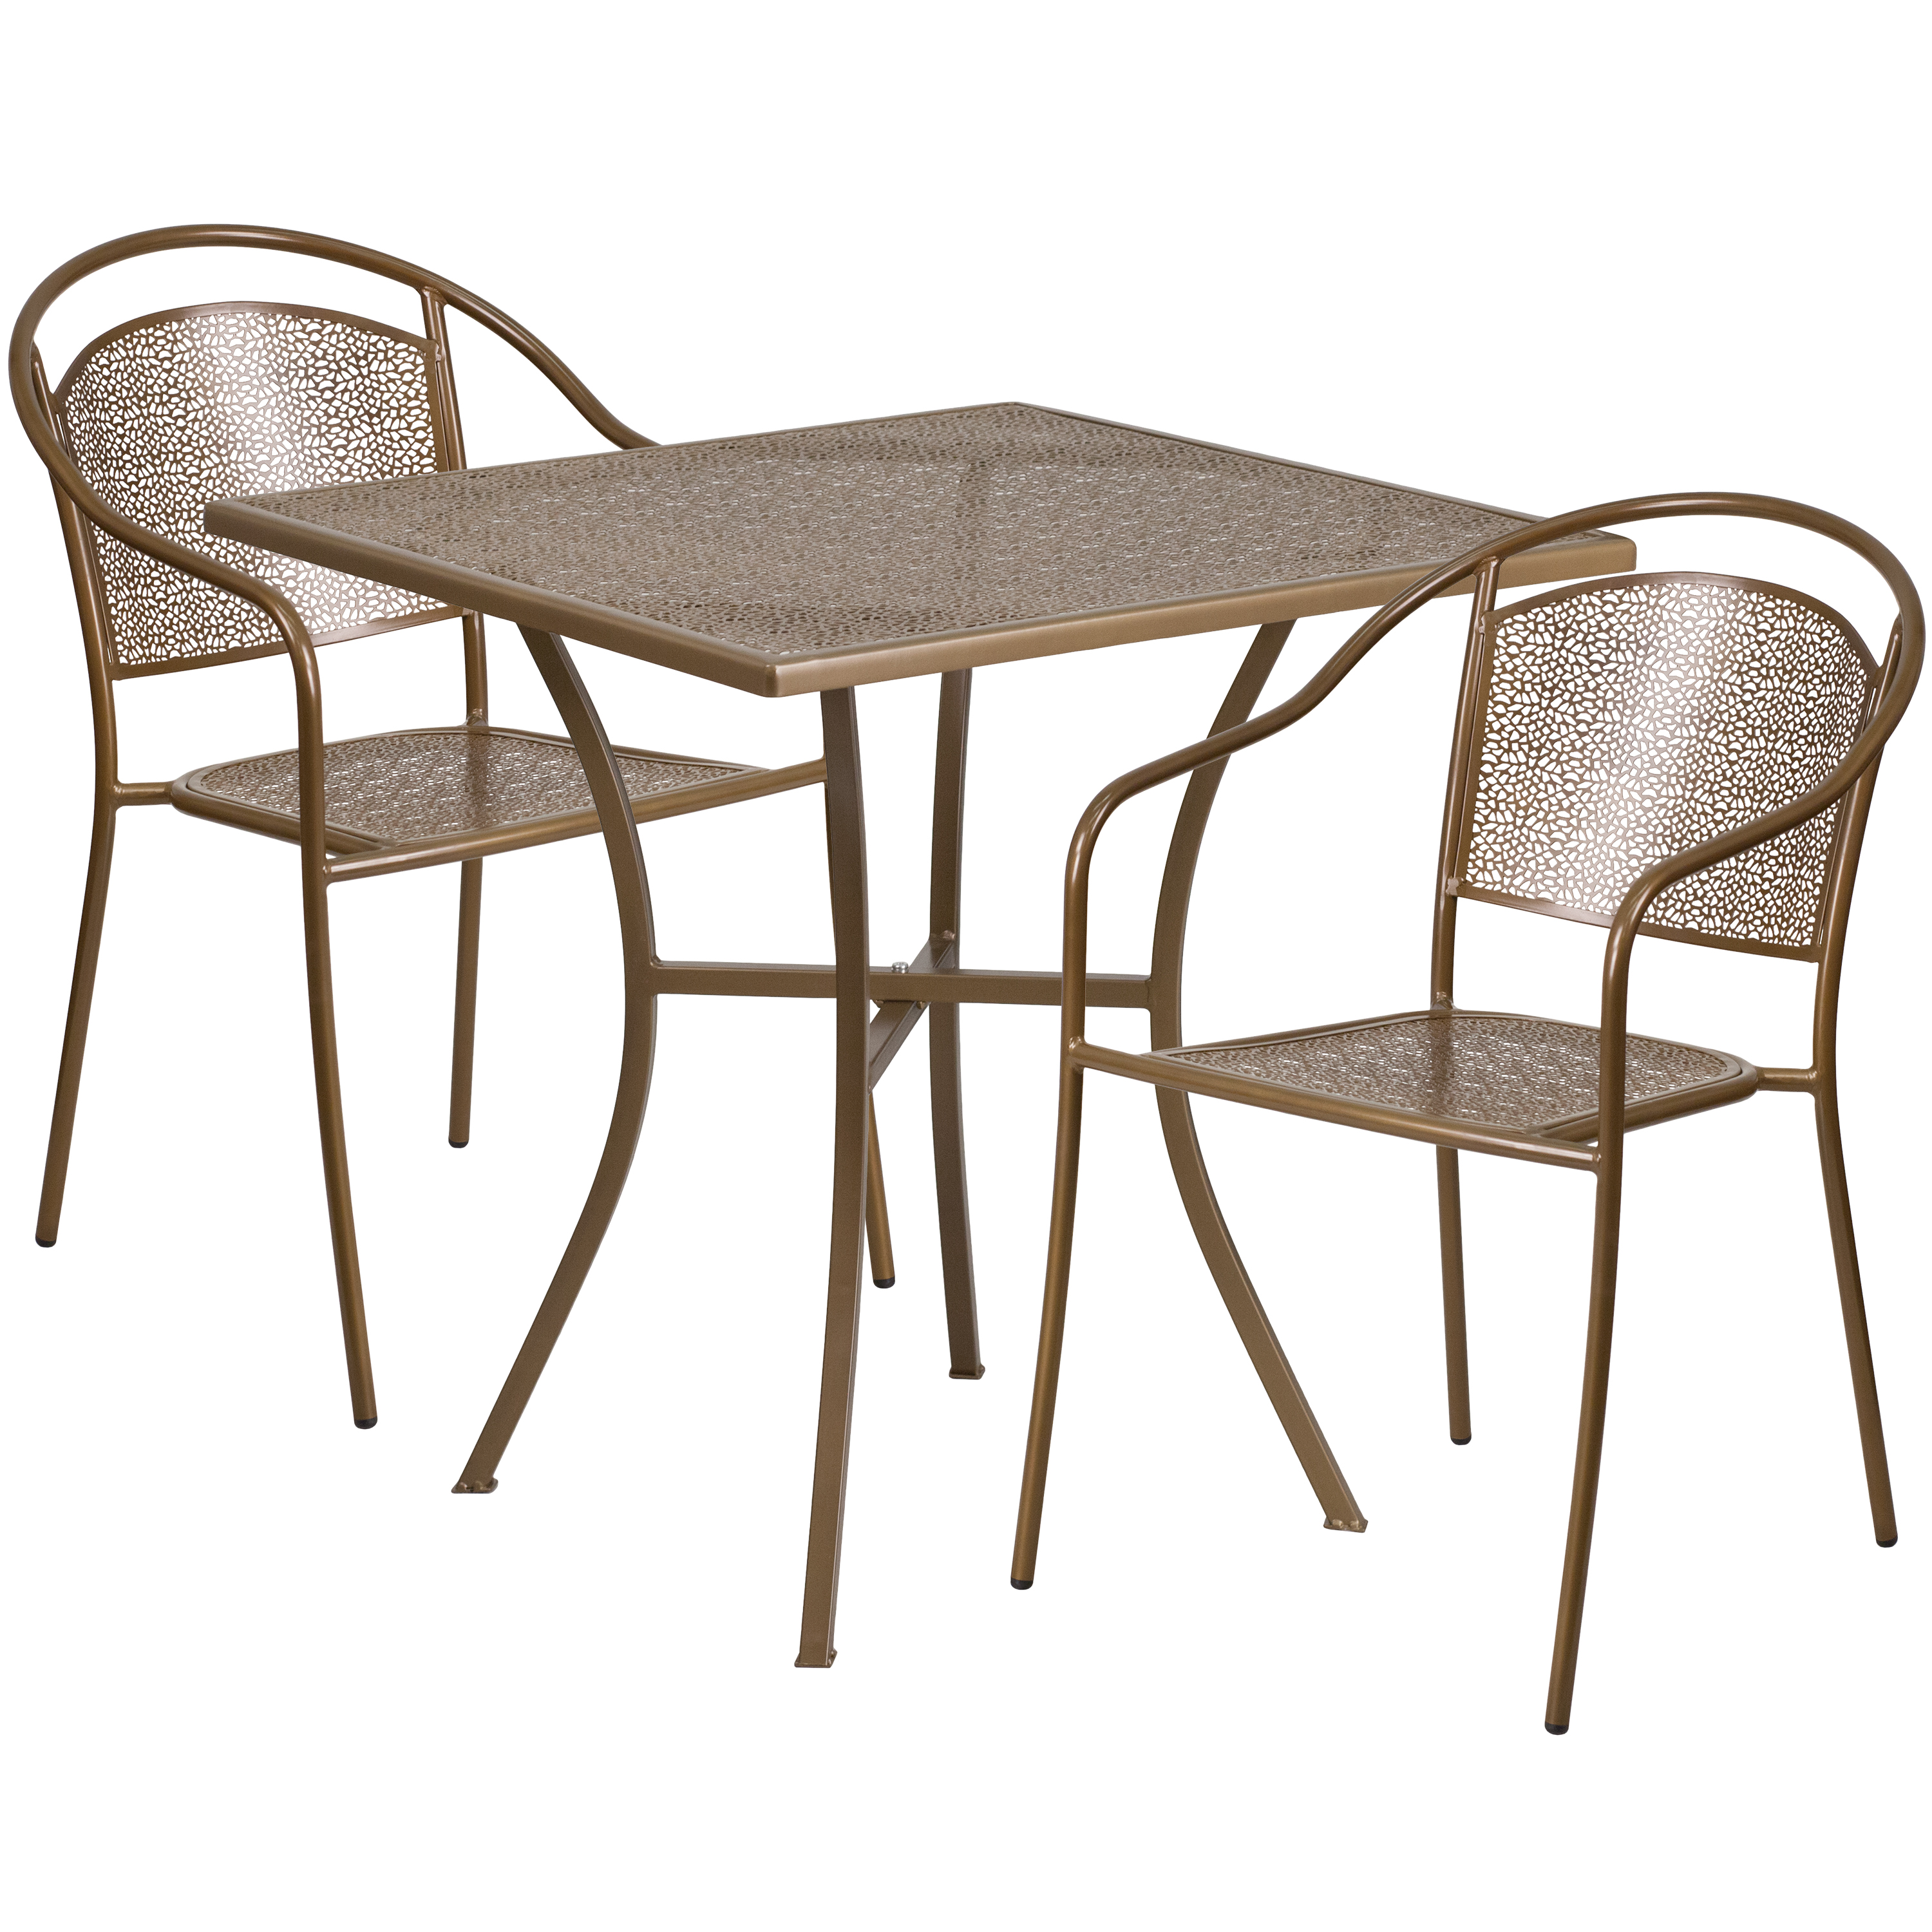 "Flash Furniture 28"" Square Indoor-Outdoor Steel Patio Table Set with 2 Round Back Chairs, Multiple Colors"